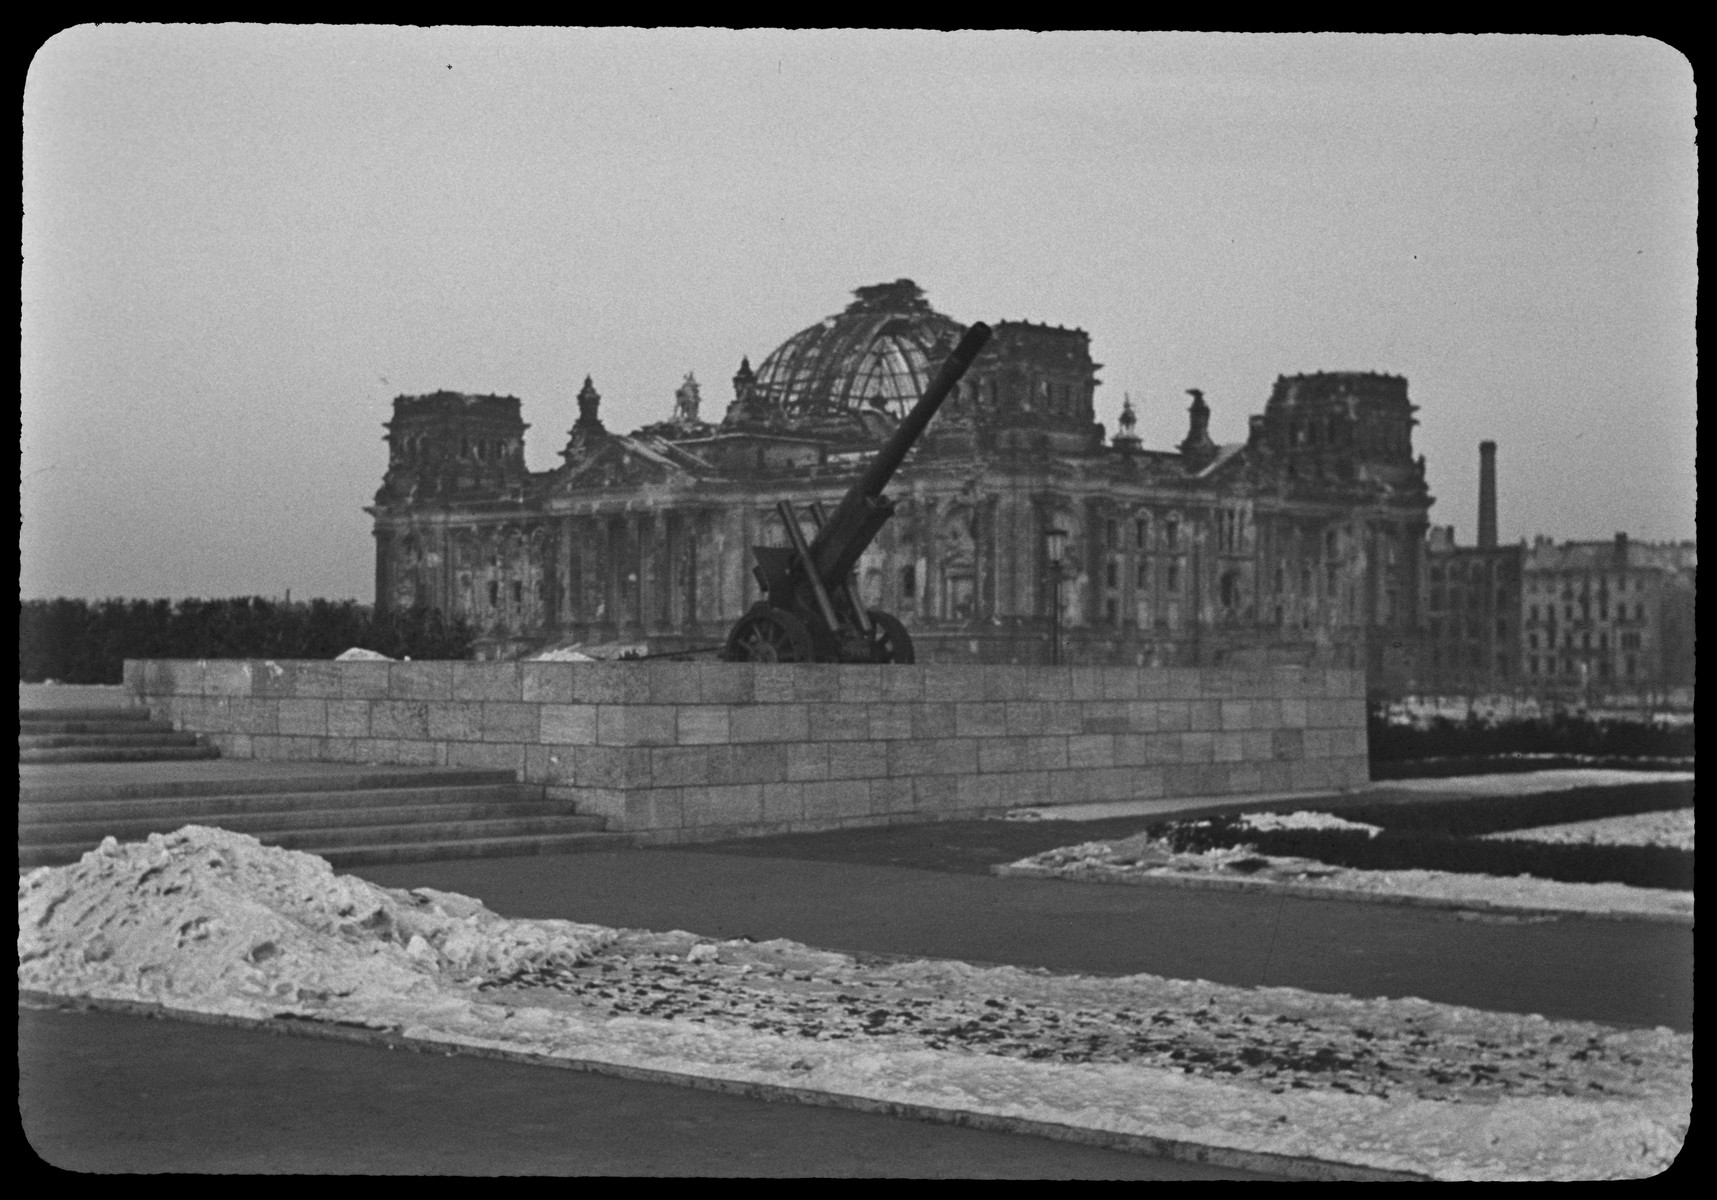 Postwar view of the Reichstag, with the Soviet War Memorial in the foreground.